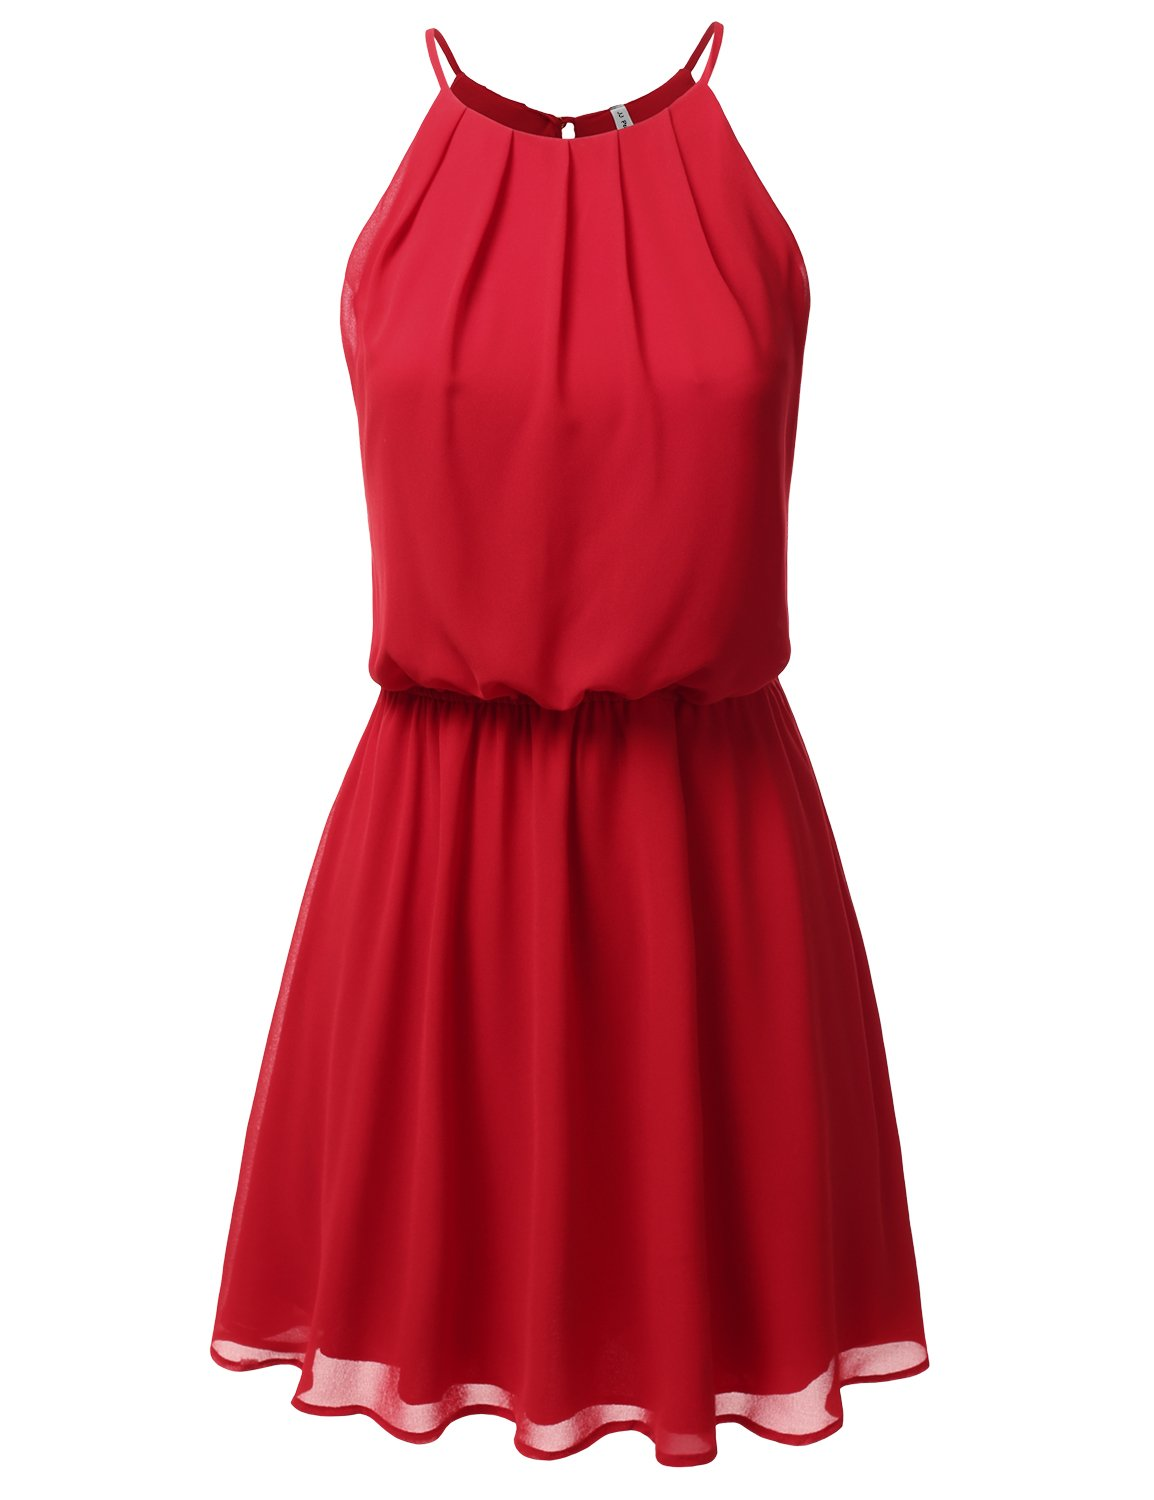 JJ Perfection Women's Sleeveless Double-Layered Pleated Mini Chiffon Dress RED M